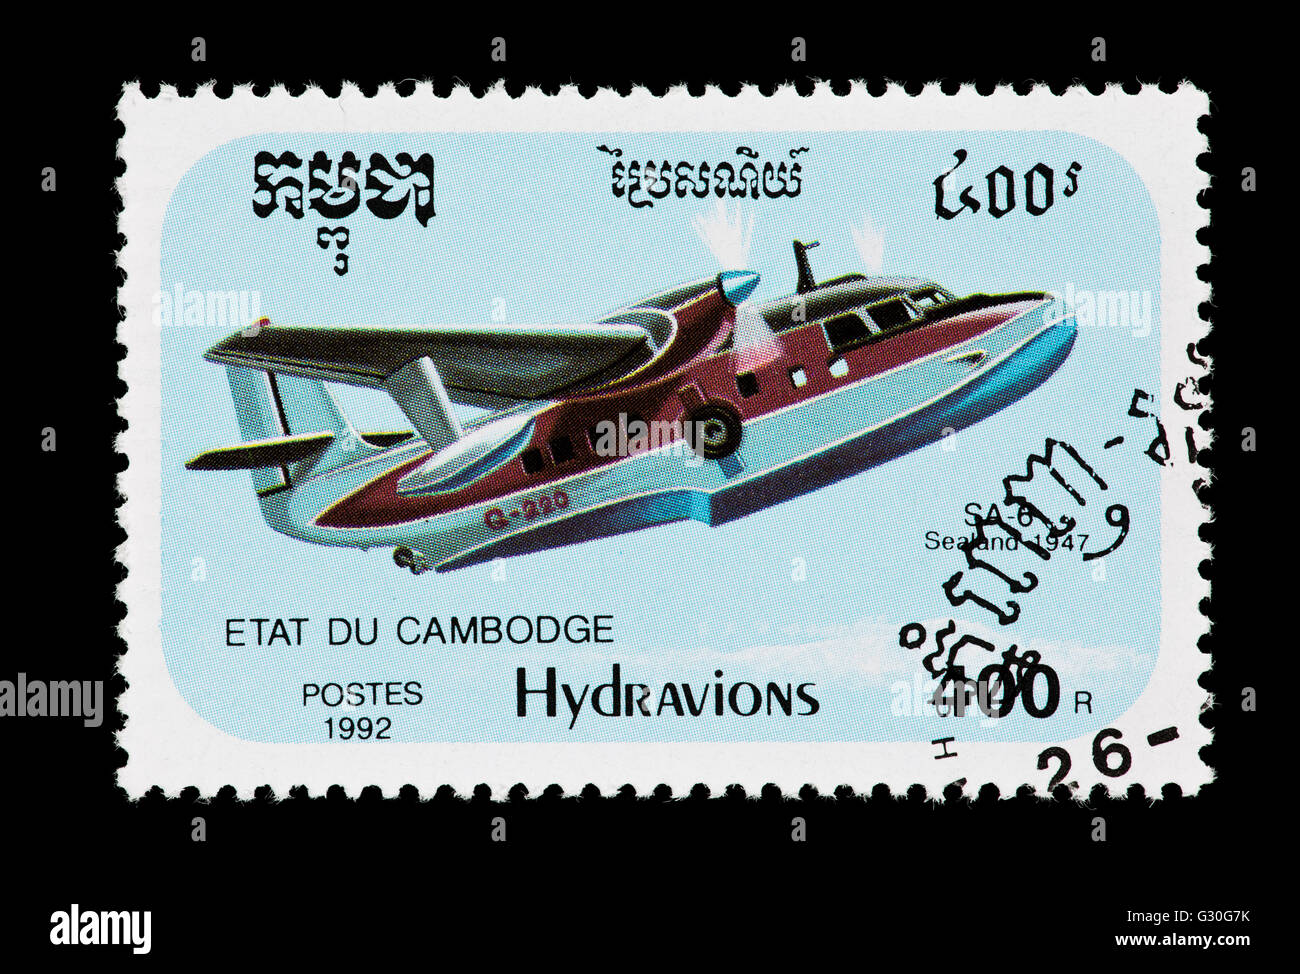 Postage stamp from Cambodia depicting a SA-6 Short Sealand airplane. - Stock Image